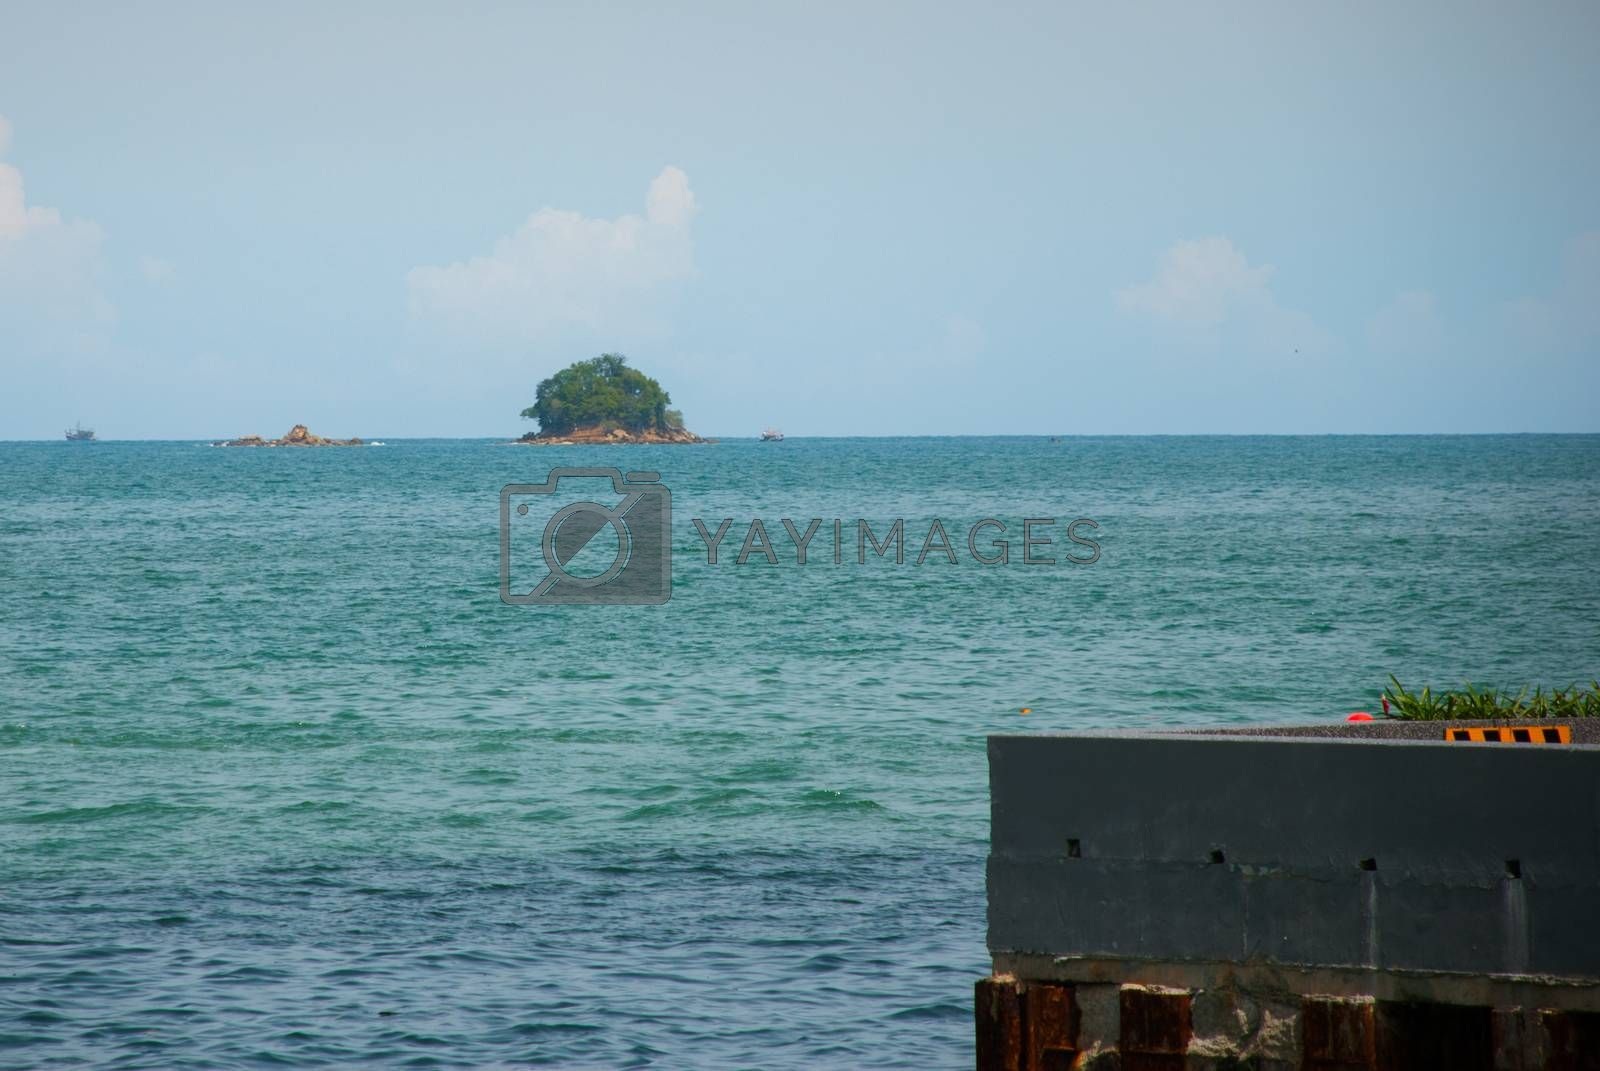 KOTA KINABALU, SABAH, MALAYSIA - MARCH 2017: The view of the island from the waterfront. Kota Kinabalu City is the capital of the state of Sabah, located in East Malaysia.